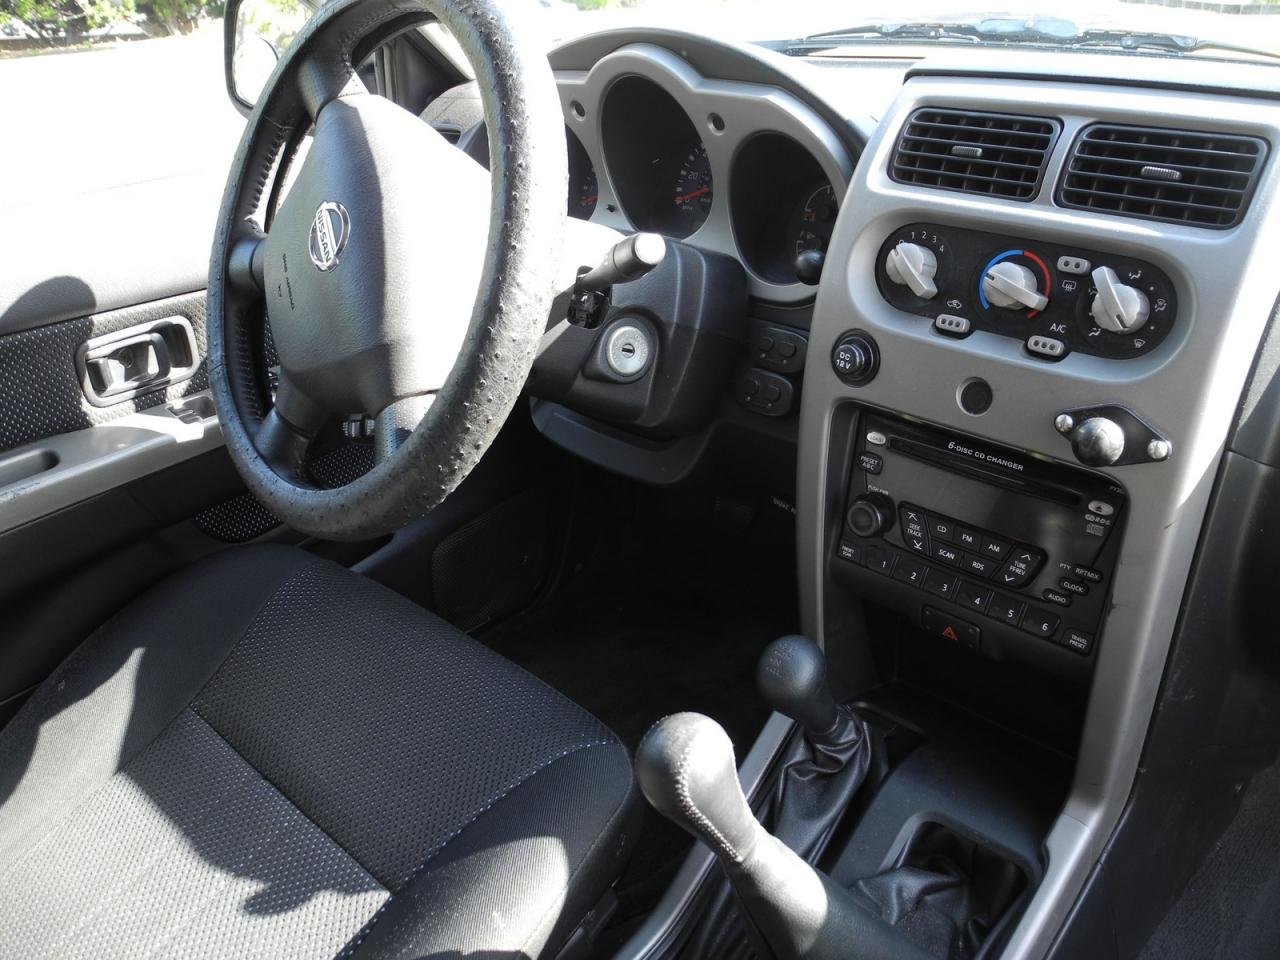 2002 nissan maxima interior images hd cars wallpaper 2002 nissan maxima black interior images hd cars wallpaper 2002 nissan maxima interior images hd cars vanachro Images